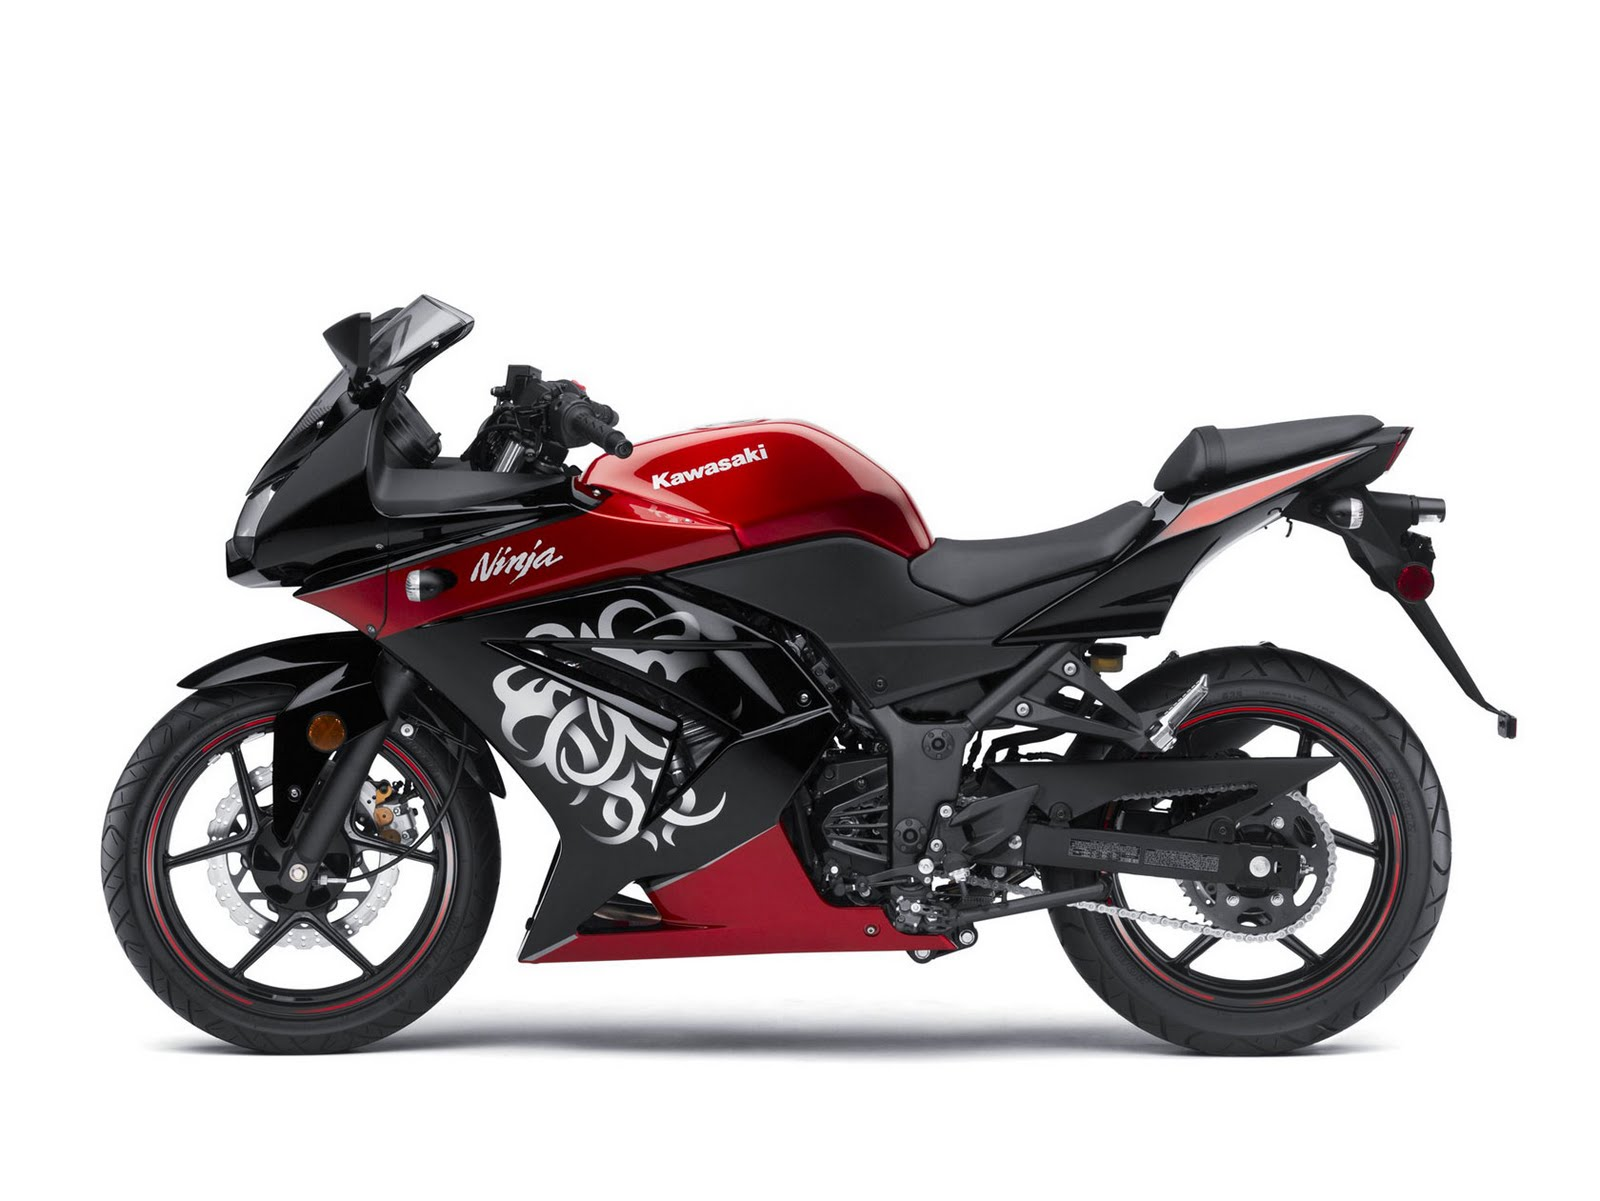 kawasaki kawasaki ninja 250r. Black Bedroom Furniture Sets. Home Design Ideas